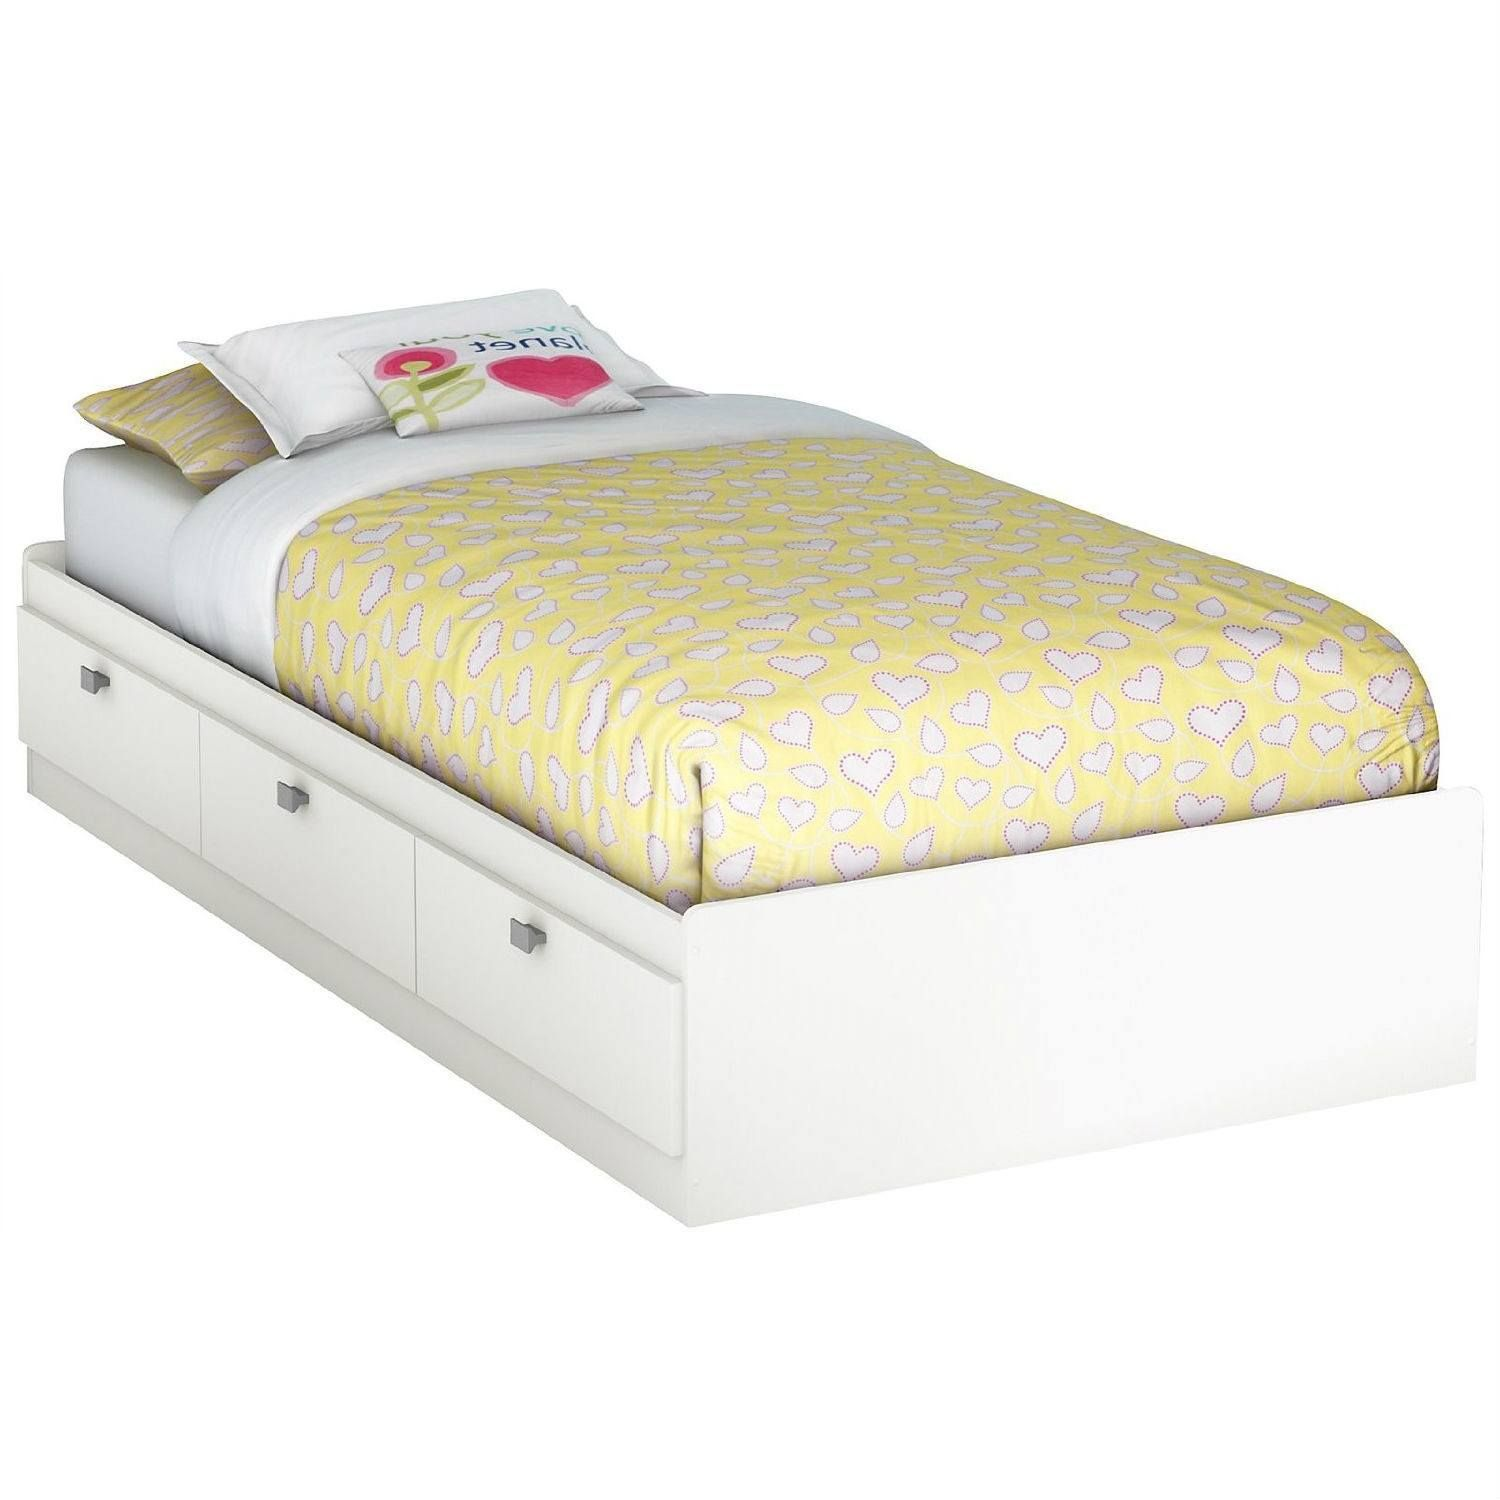 Twin platform bed with drawers - This Twin Size White Platform Bed For Kids Teens Adults With 3 Storage Drawers Offers You